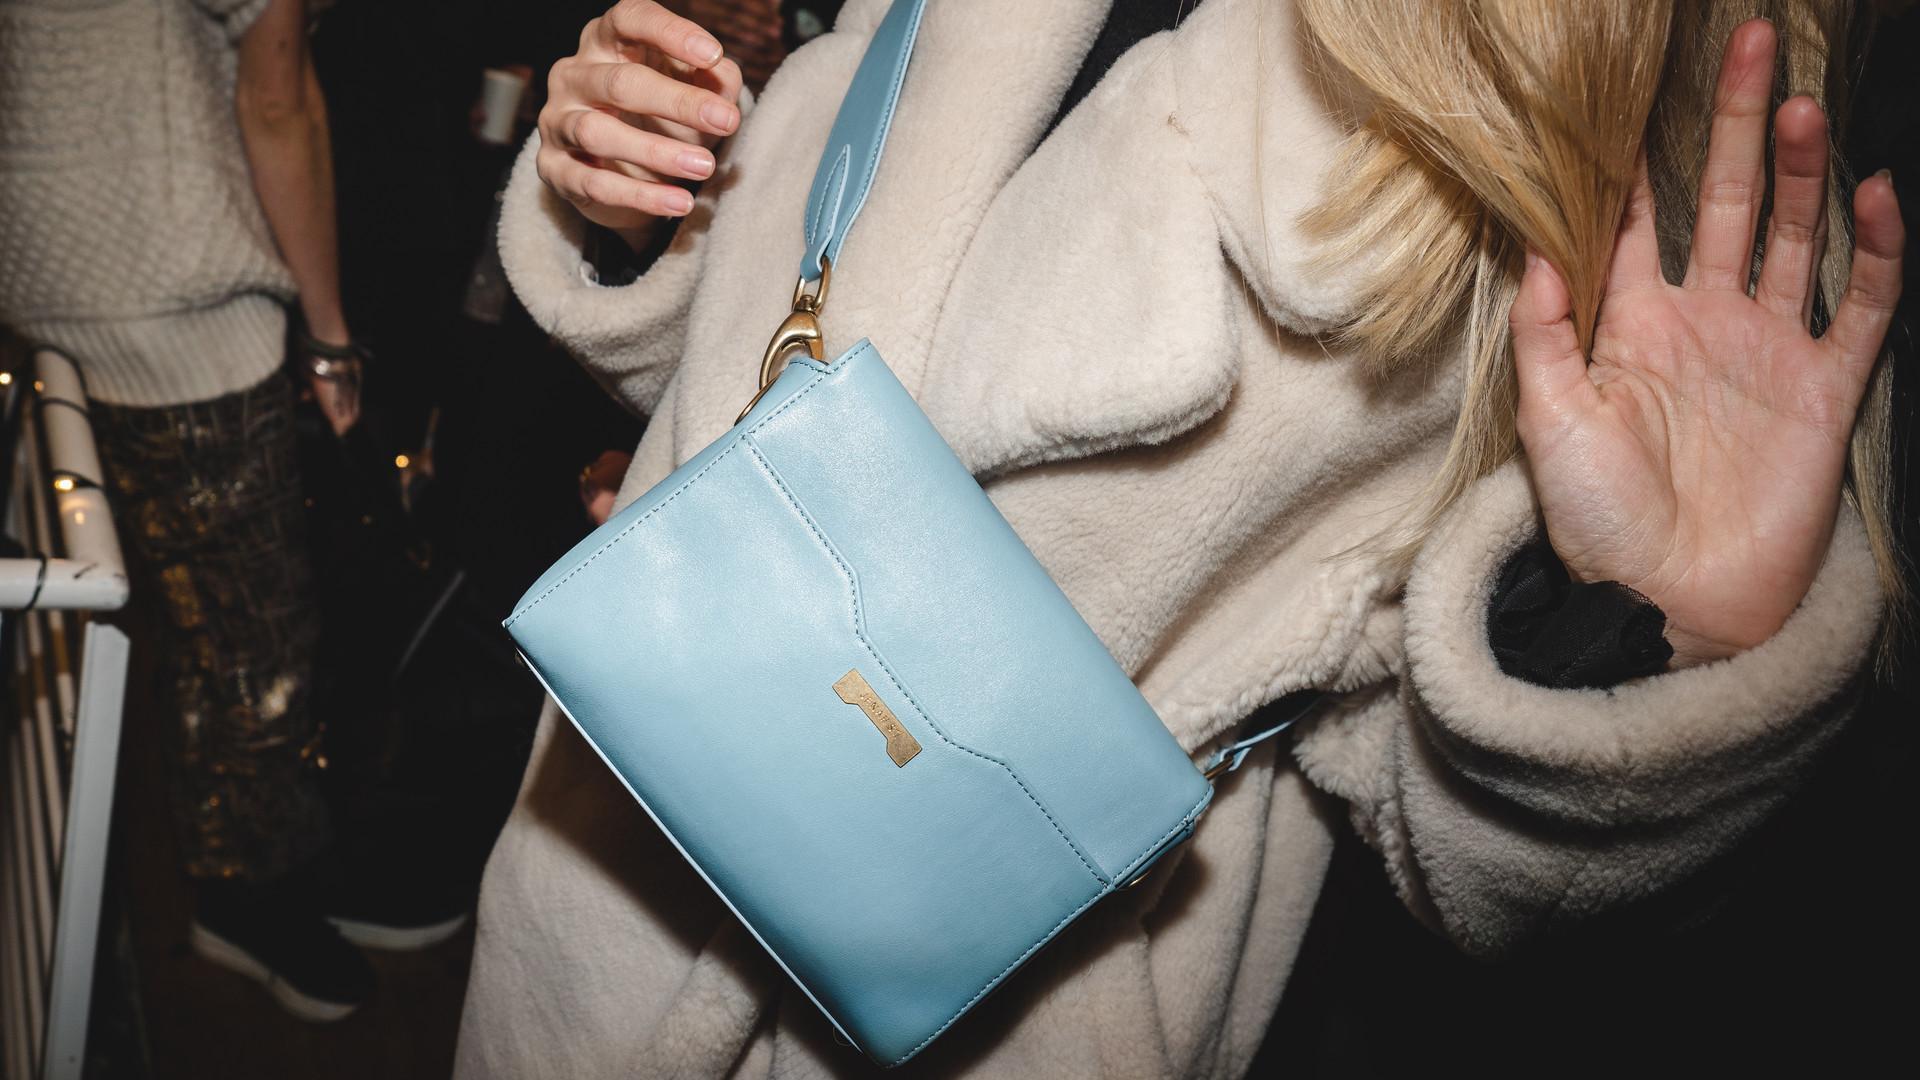 woman presenting a blue pouch during an event